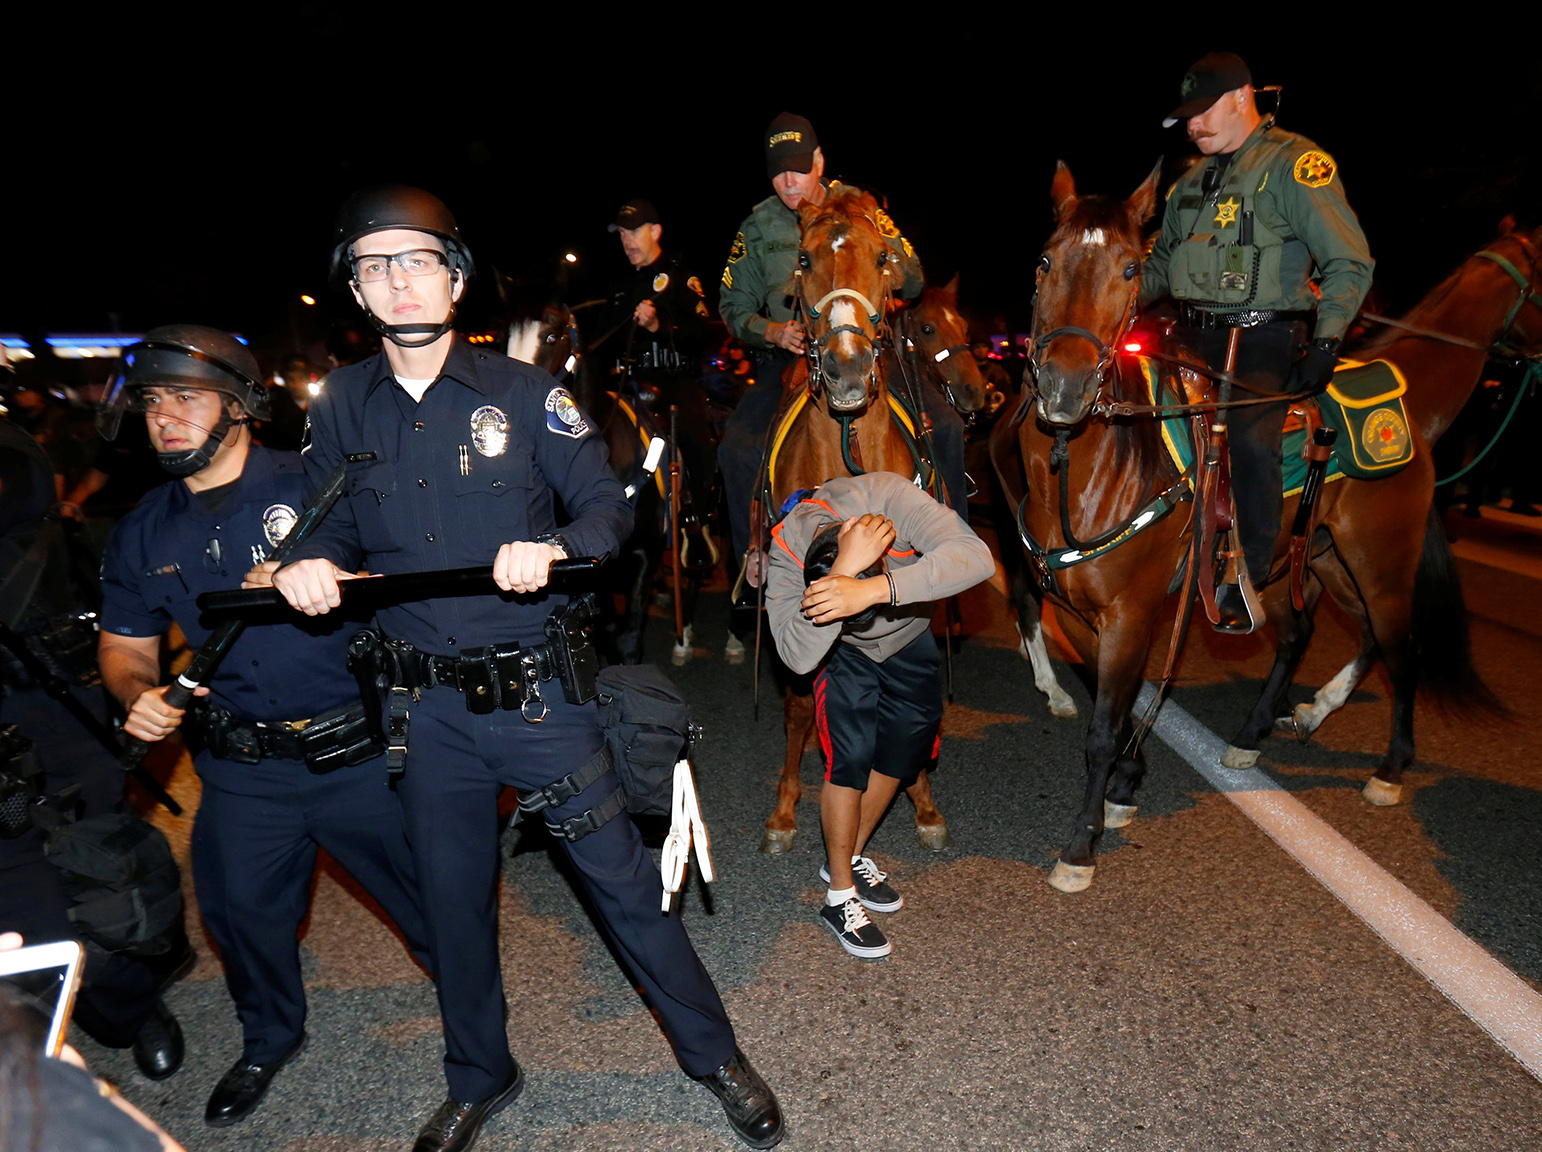 Sheriffs on horseback and police break up a group of demonstrators outside Republican U.S. presidential candidate Donald Trump's campaign rally in Costa Mesa